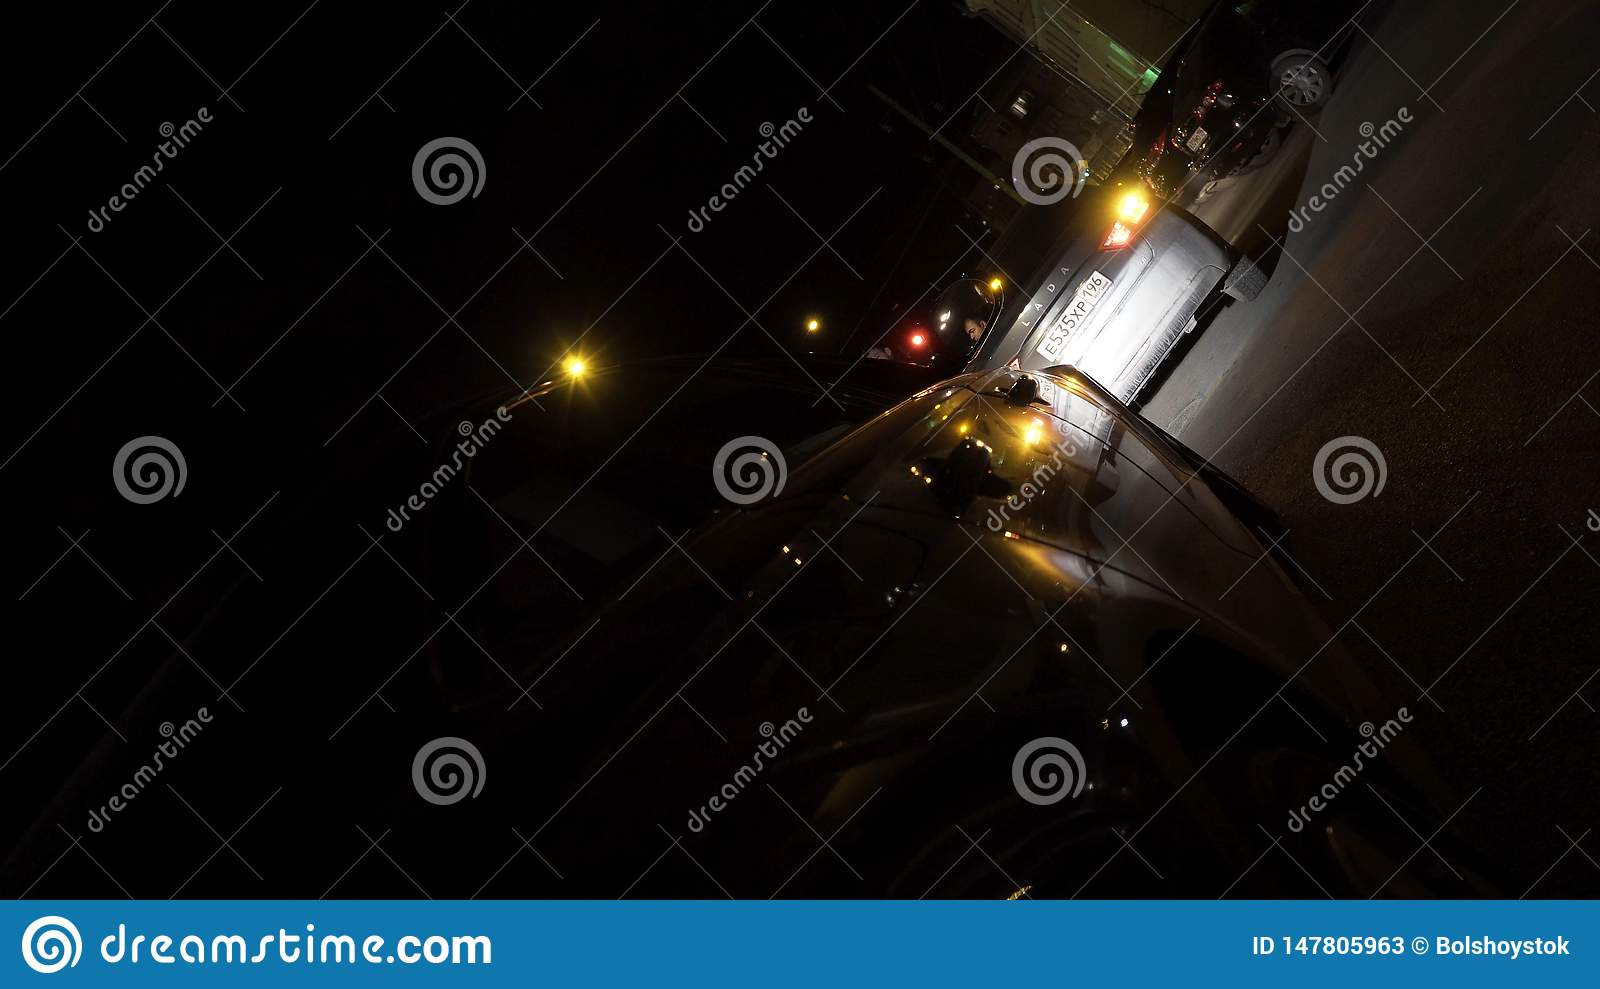 Rear view of a black car parked at night in the town street, night traffic concept. Footage. Passenger vehicle with neon